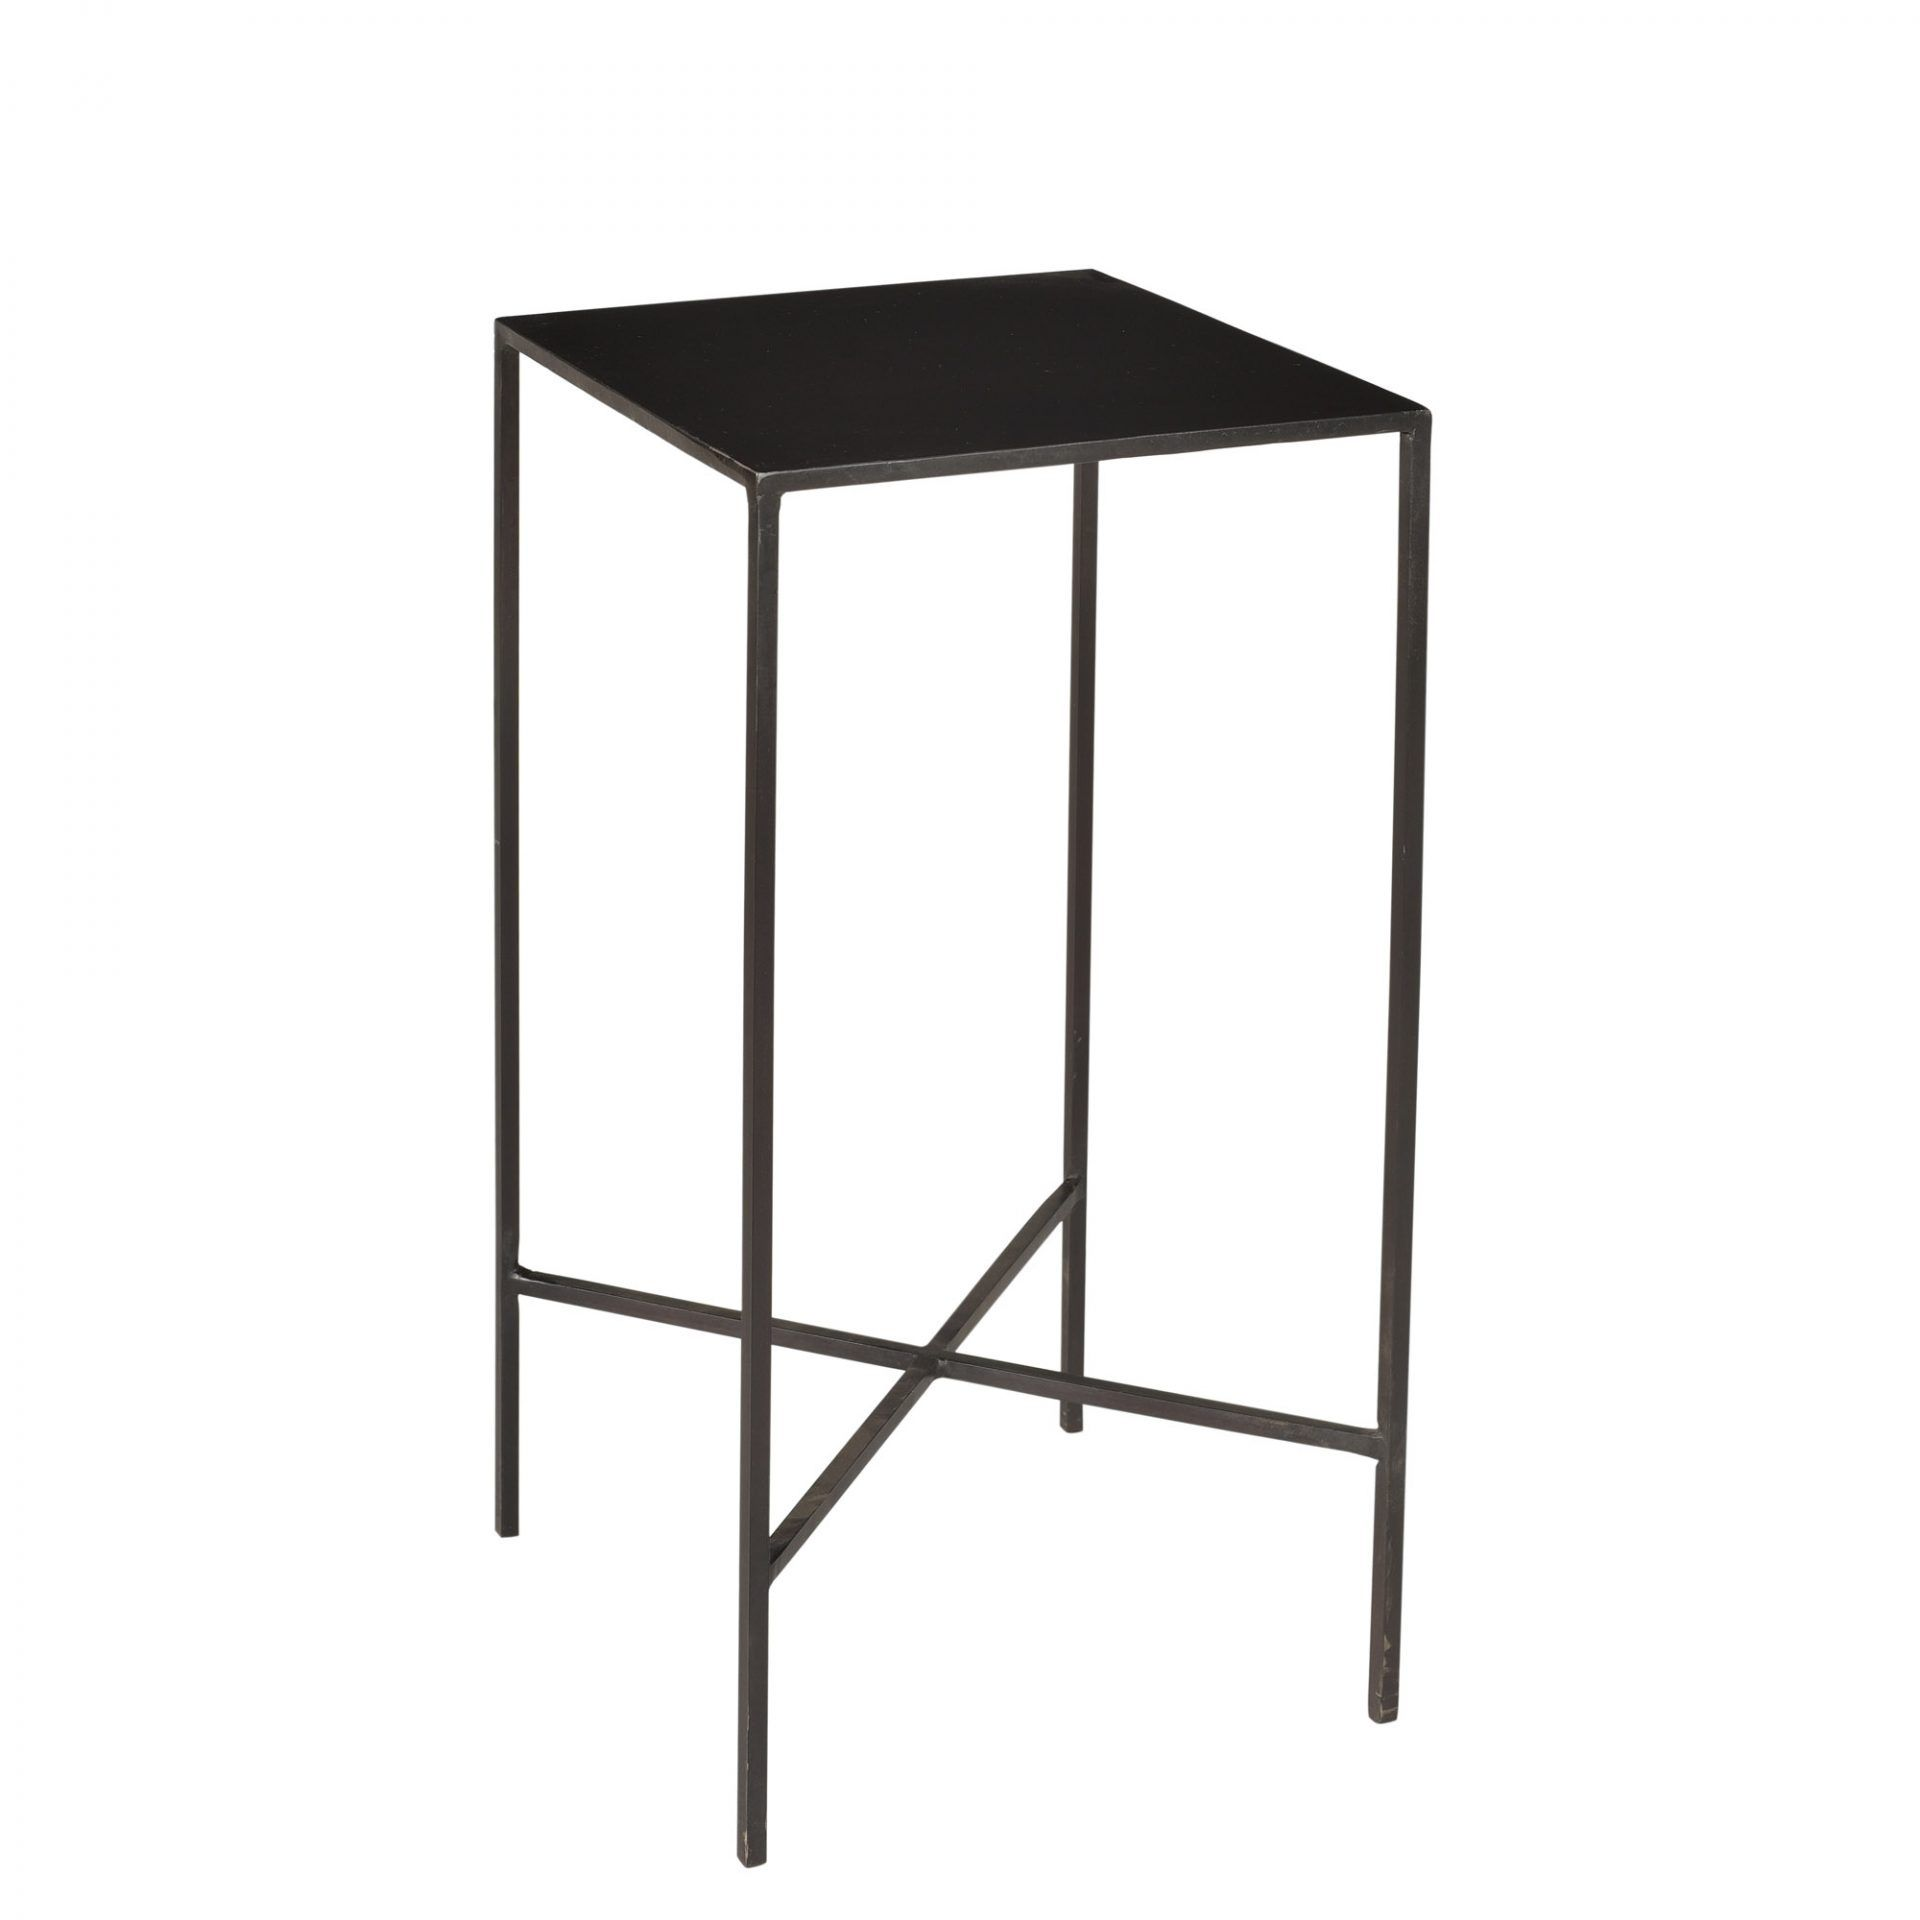 baltimore accent table black iron pottery barn side chairs balcony furniture set decorations brass coffee room essentials queen comforter ikea garden pots file box narrow pier one